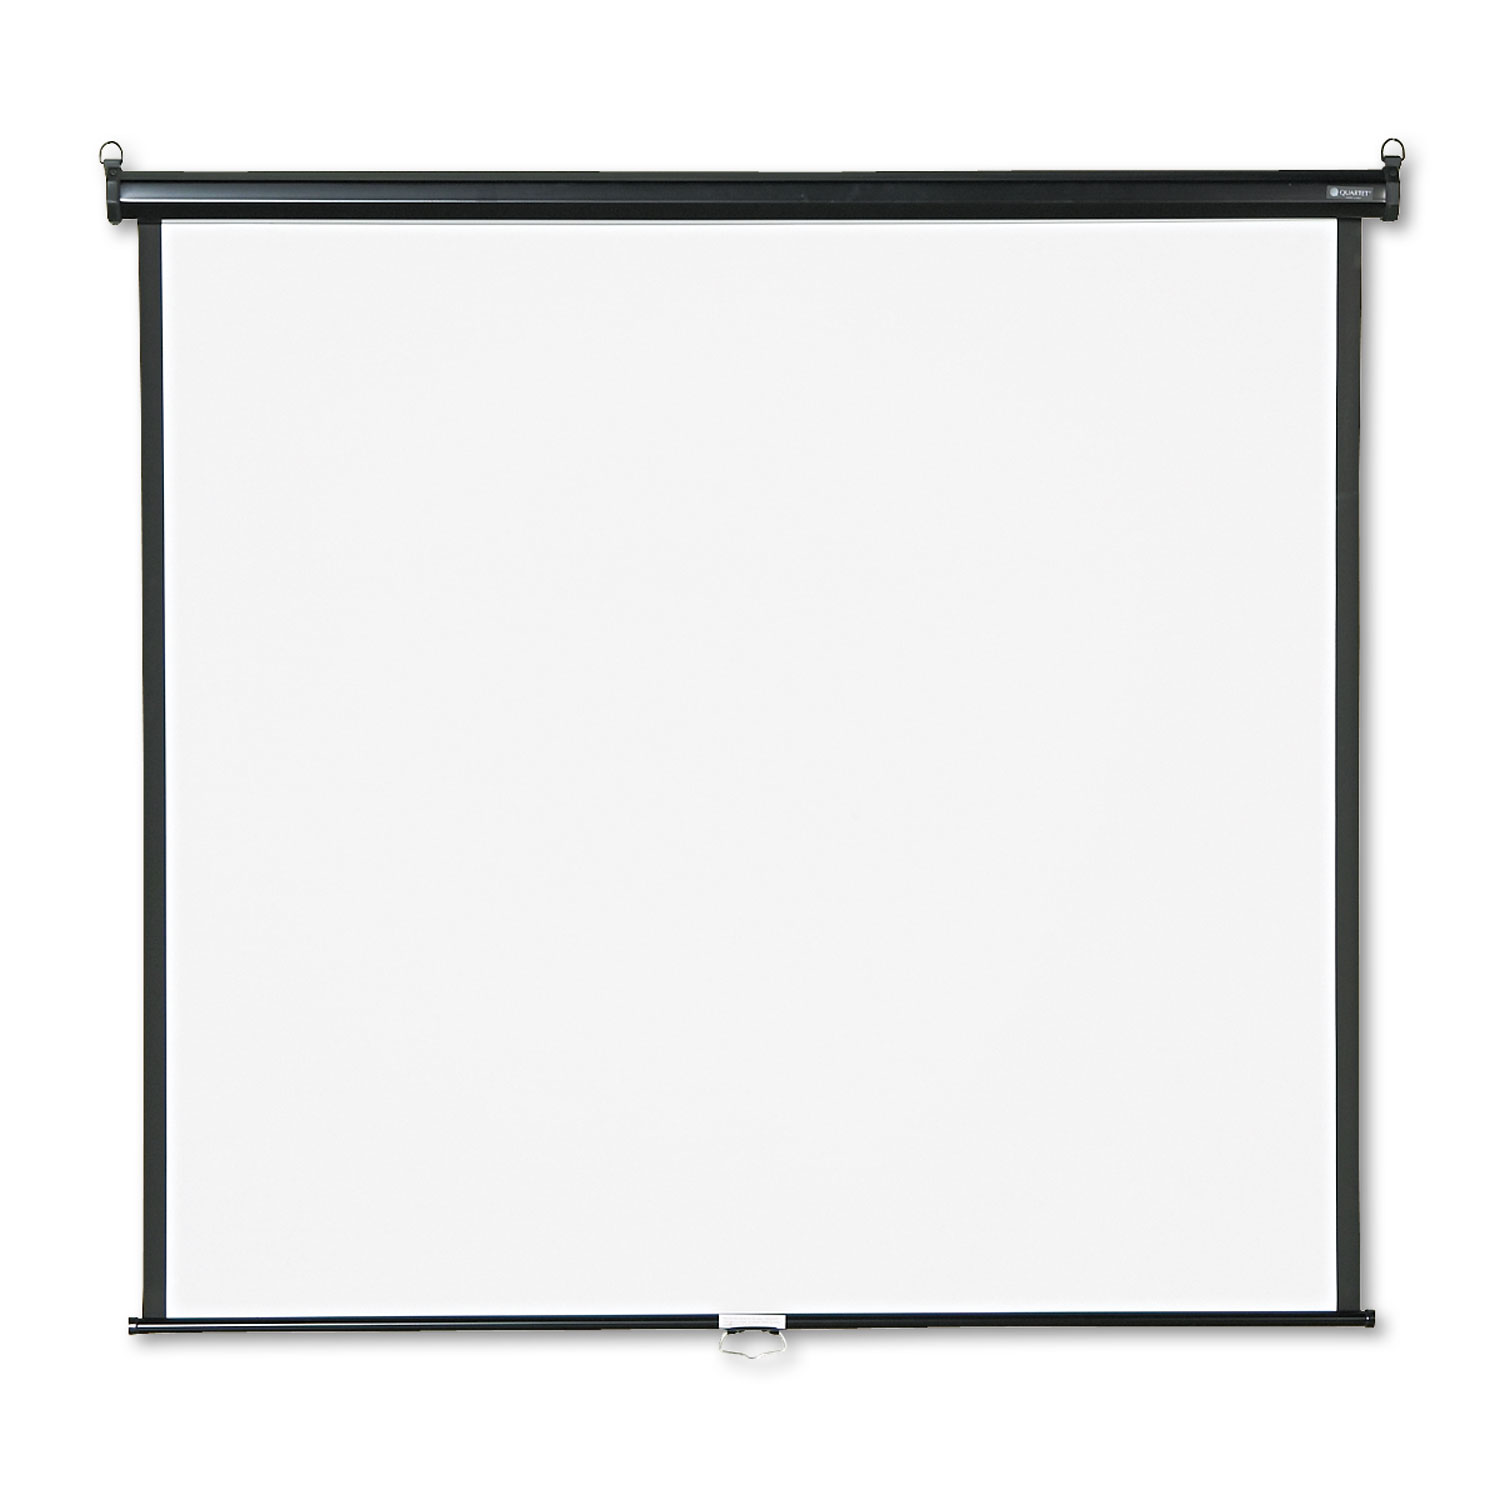 Picture of Wall or Ceiling Projection Screen, 60 x 60, White Matte, Black Matte Casing